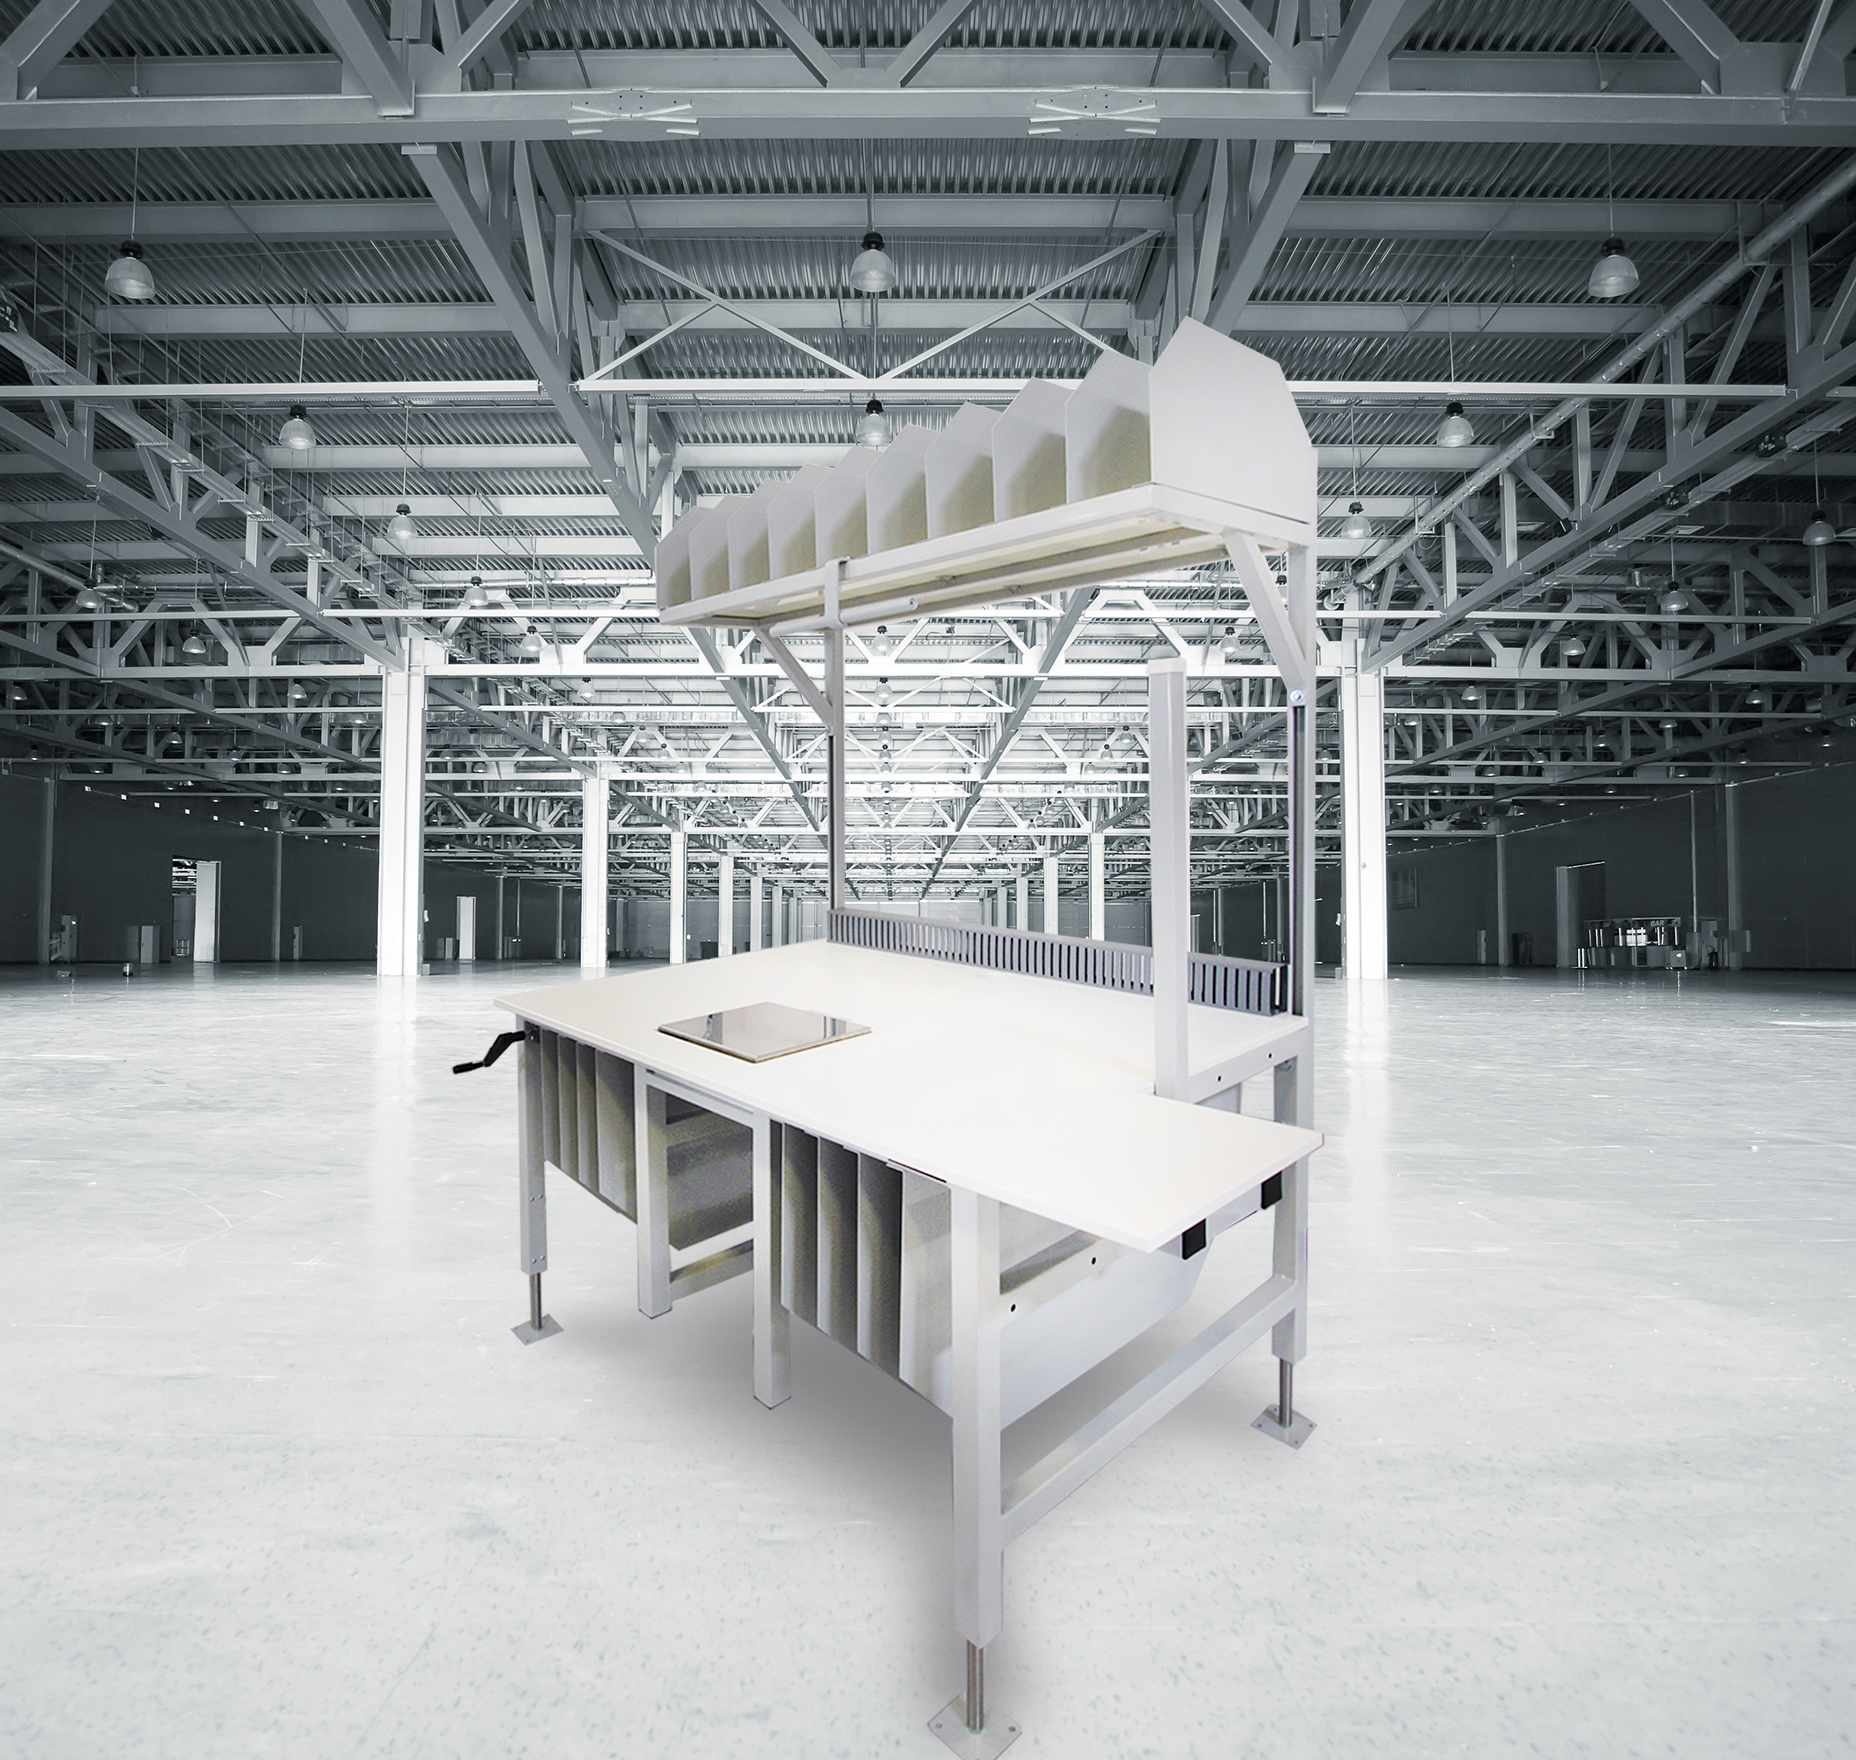 Industrial Workbenches, Laboratory Furniture, And Computer